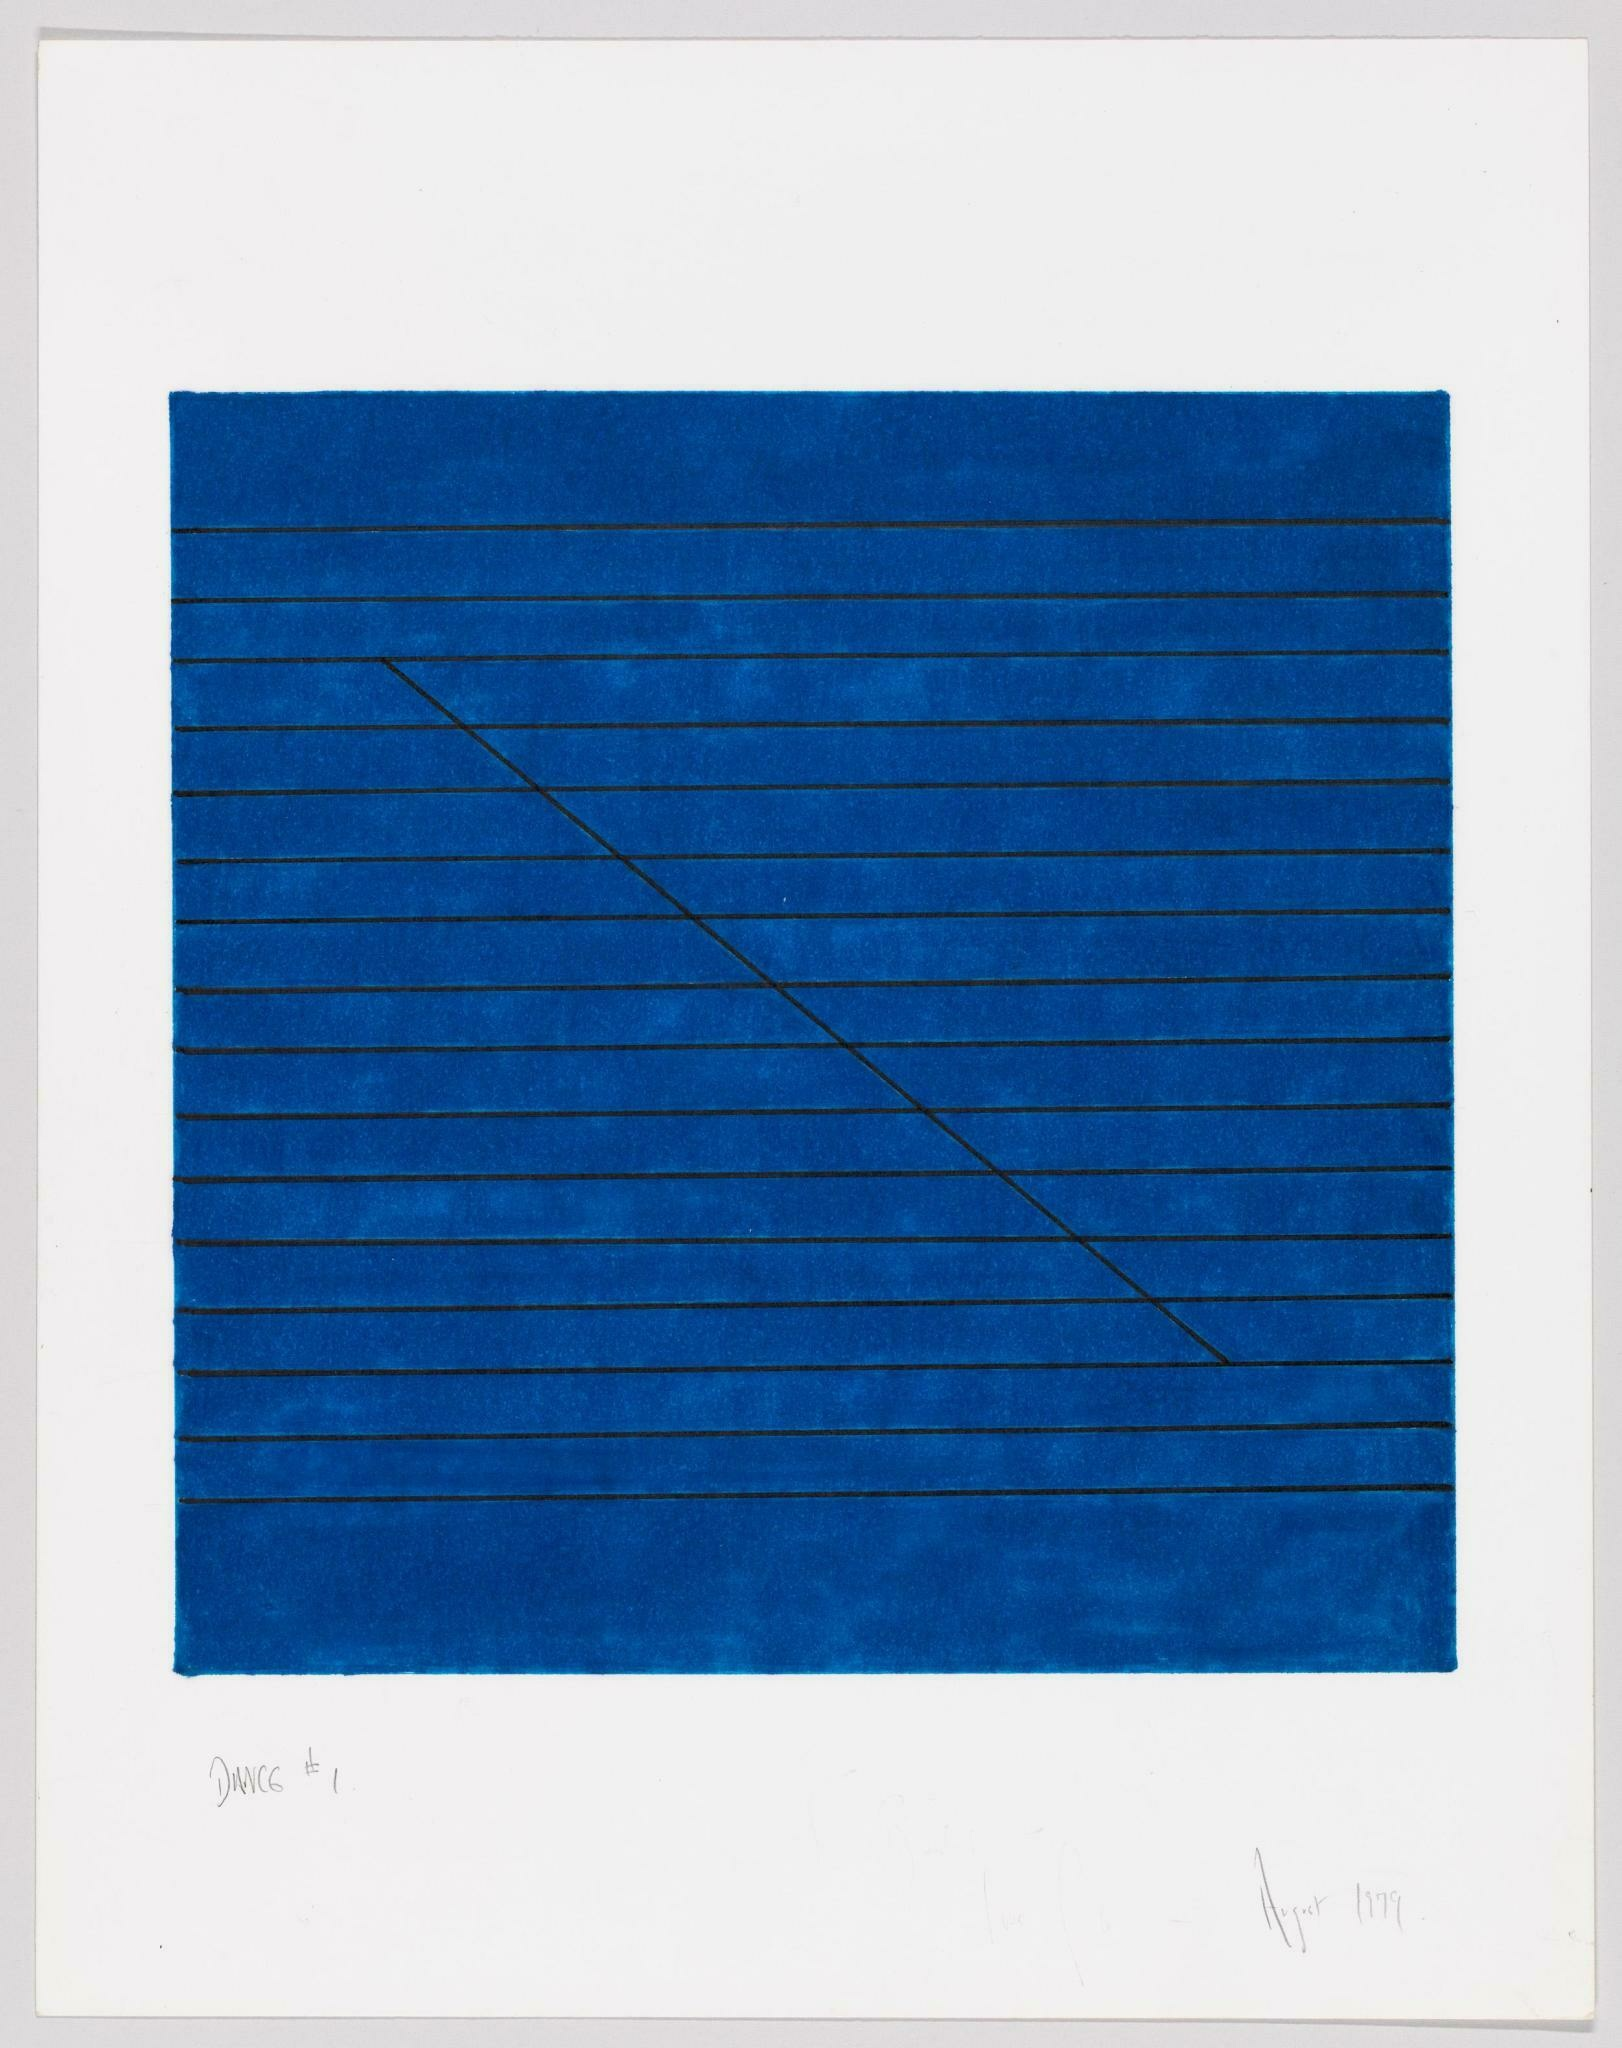 A blue rectangle containing several equally spaced horizontal black lines, all intersected by a single diagonal line